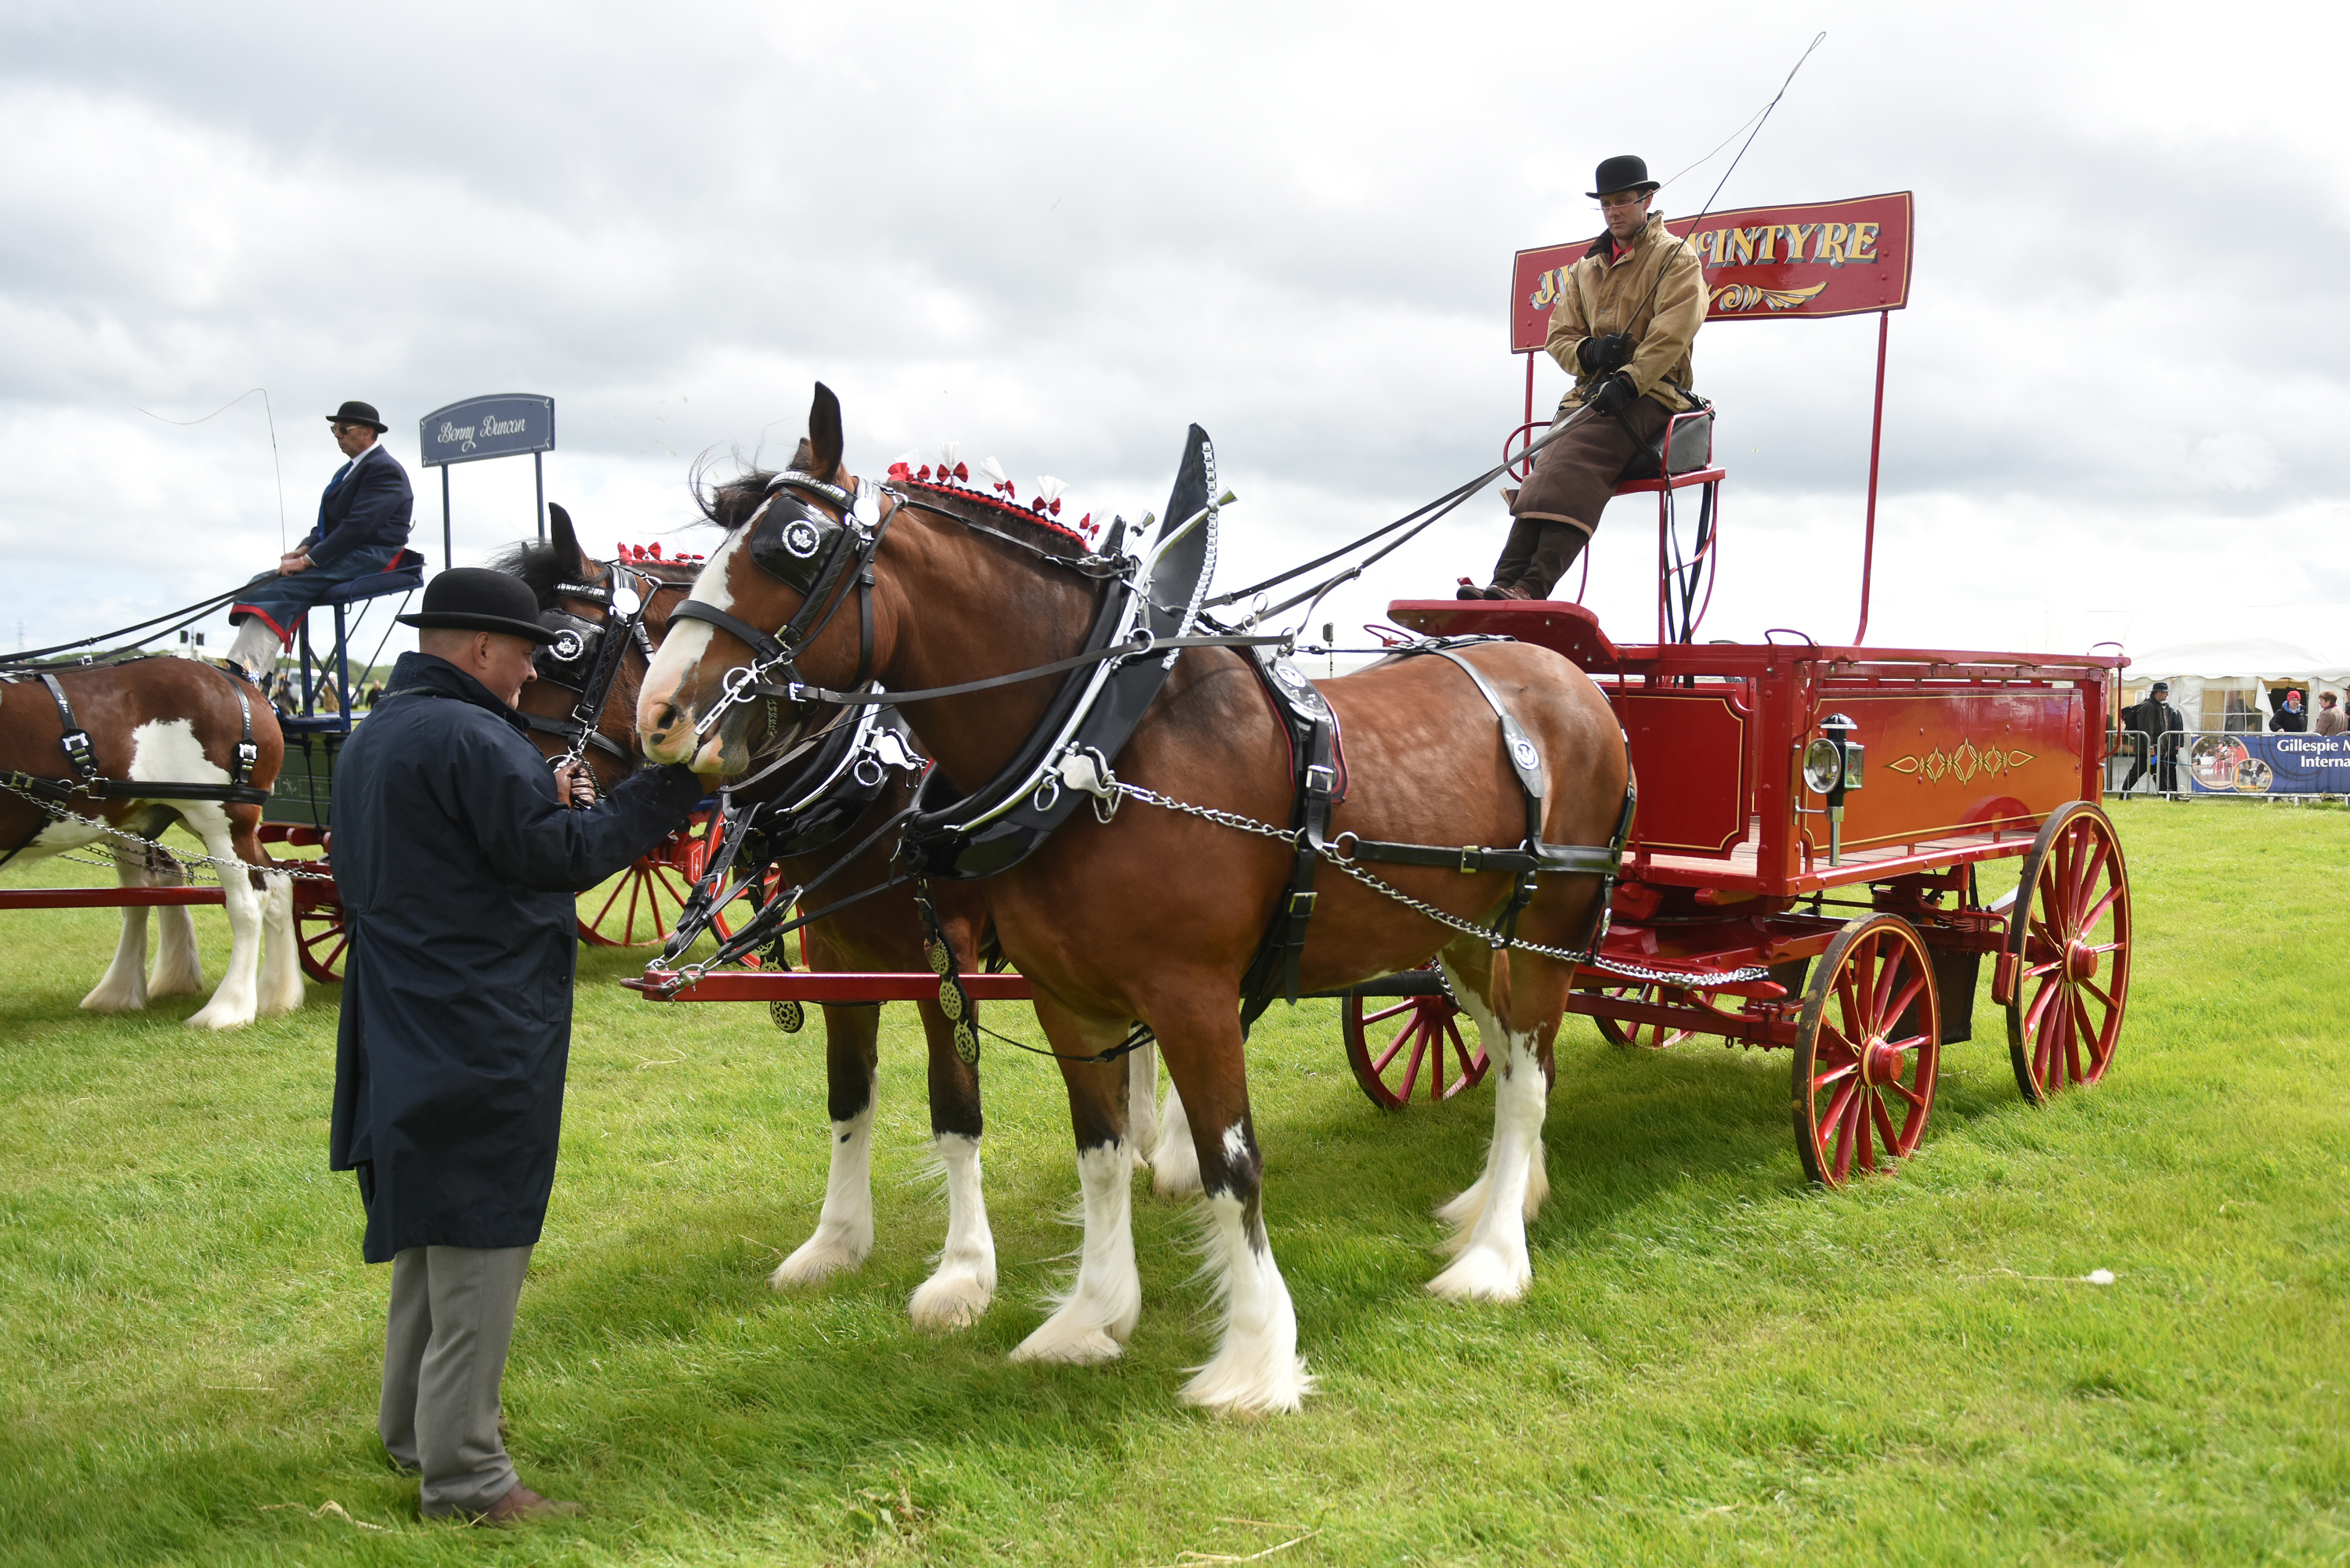 The heavy horses are a big attraction at Central and West Fife show